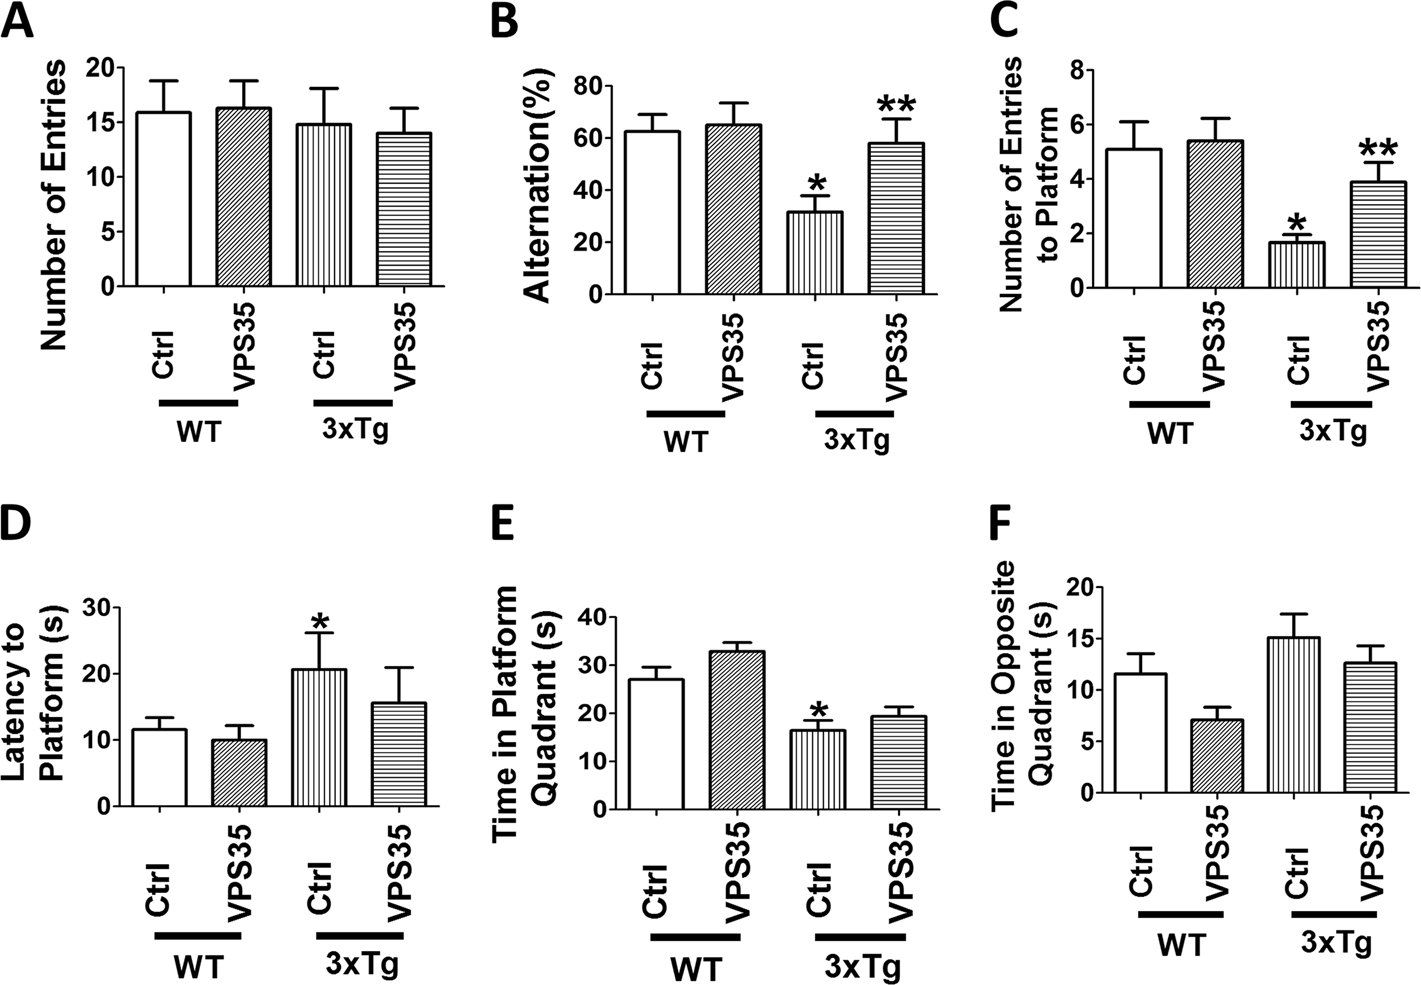 Full recovery of the Alzheimer's disease phenotype by gain of fu